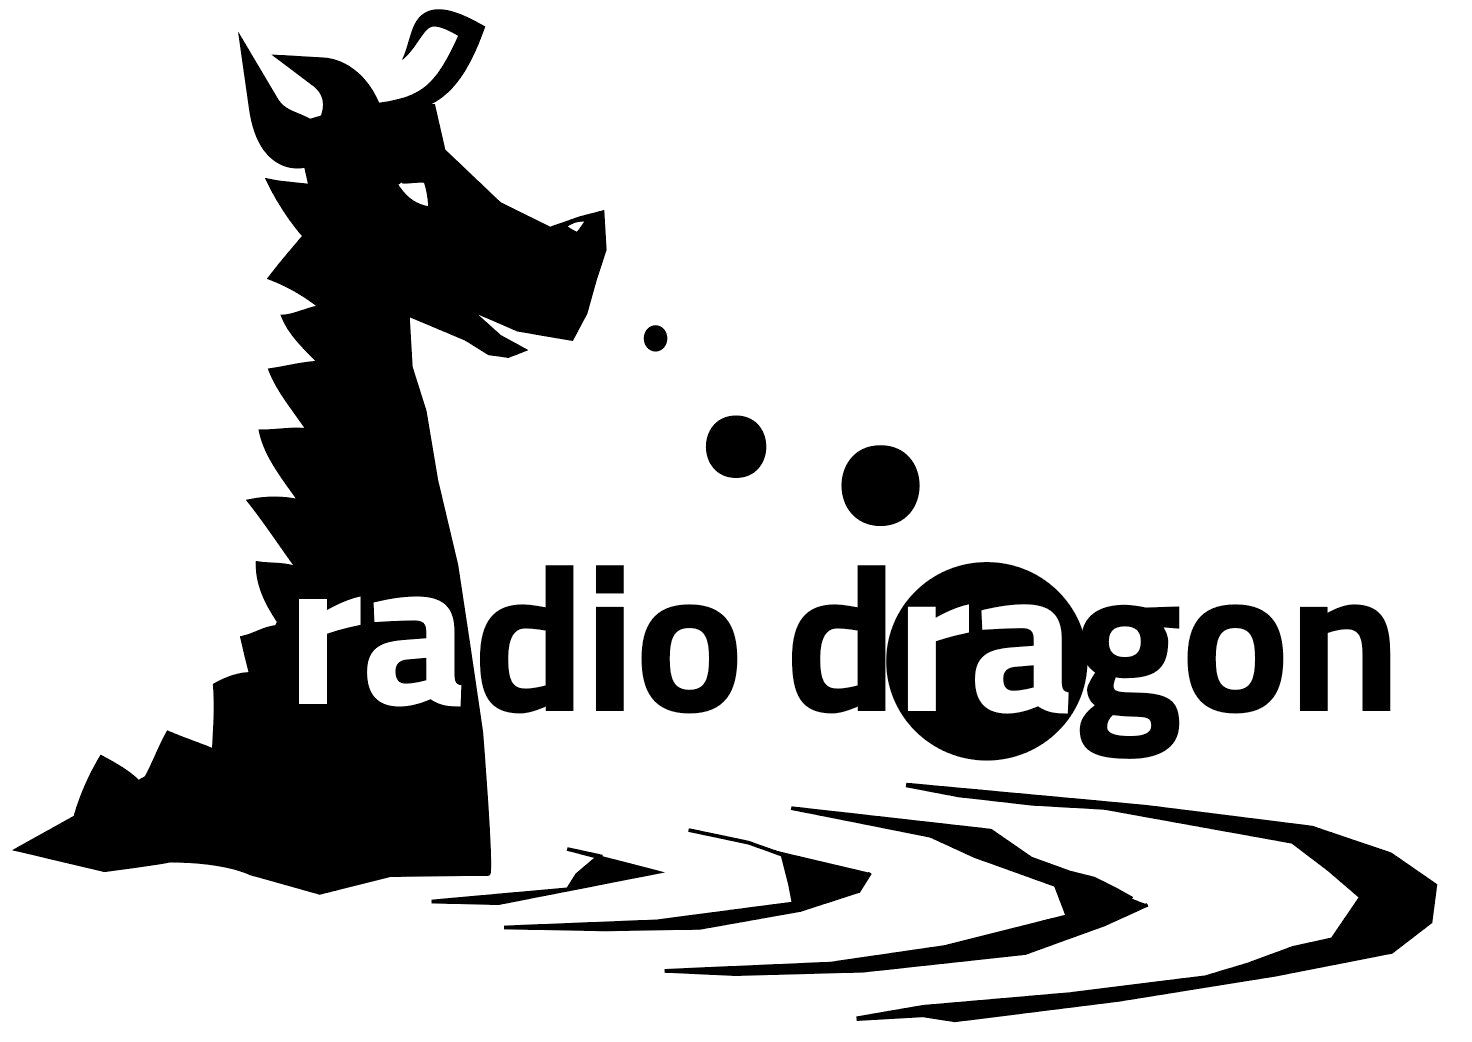 Association - Radio Dragon